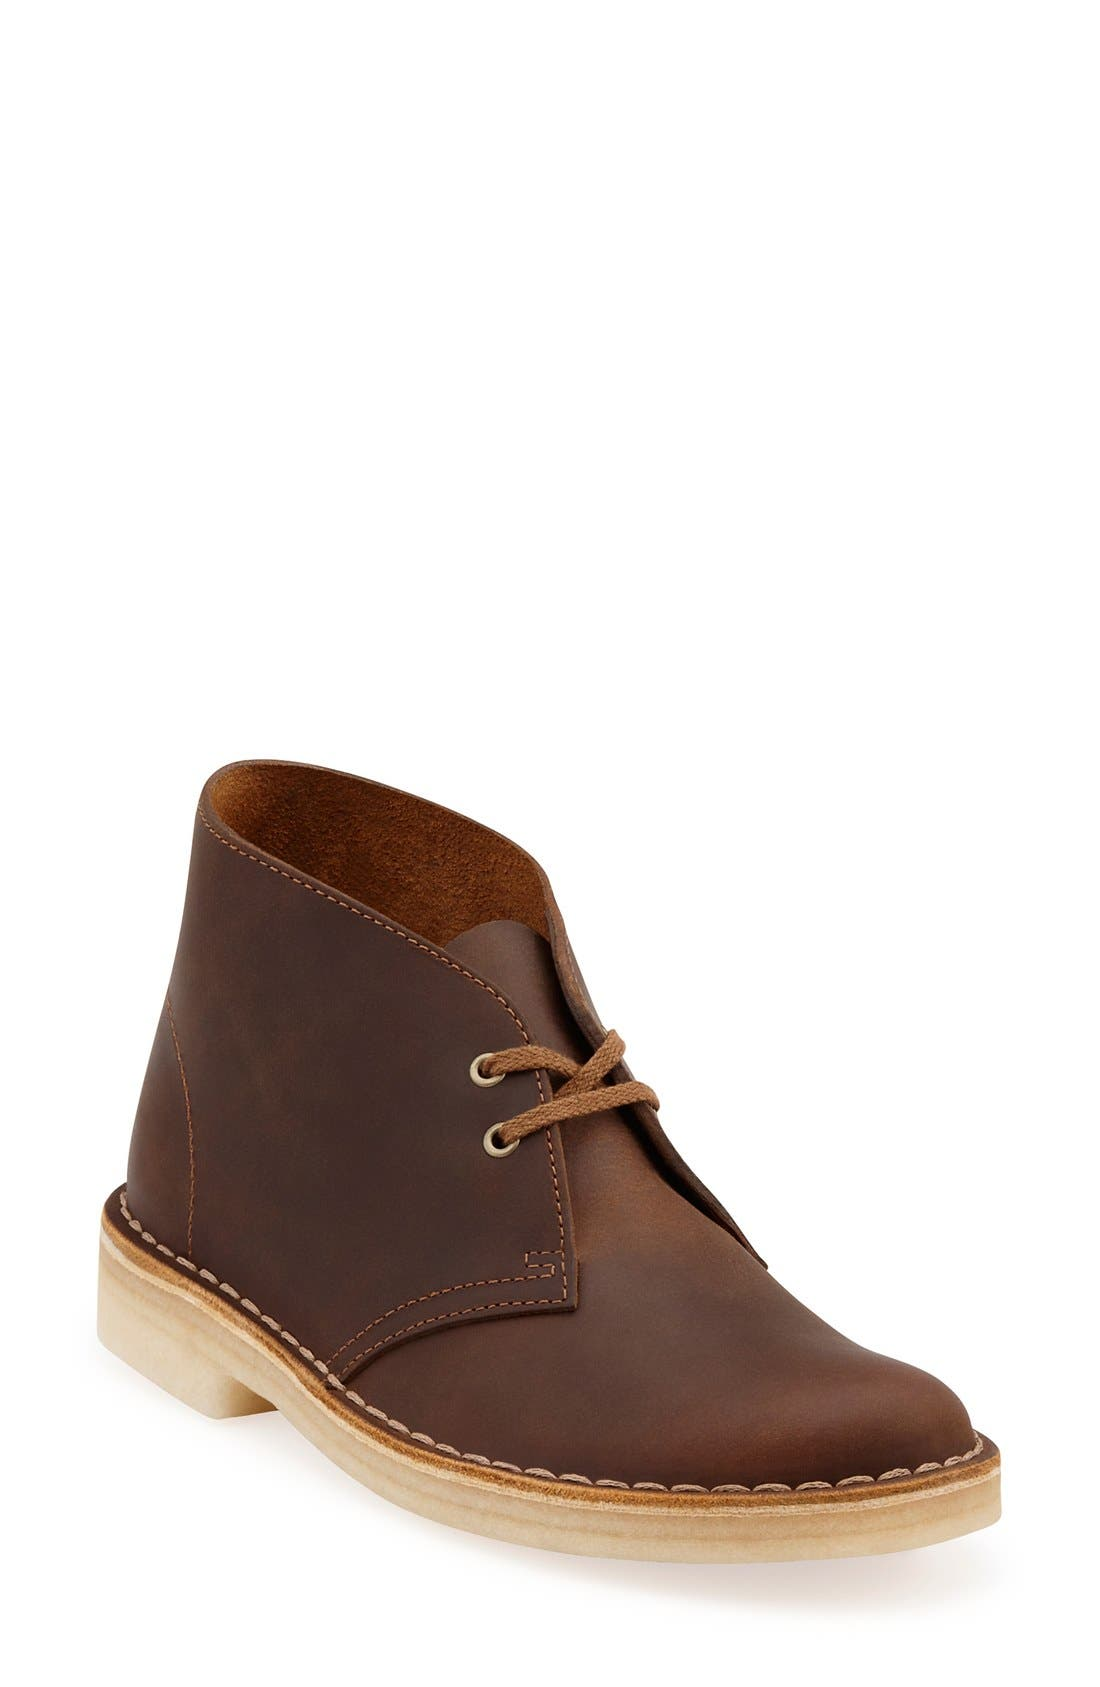 CLARKS<SUP>®</SUP> Desert ChukkaBoot, Main, color, BEESWAX LEATHER